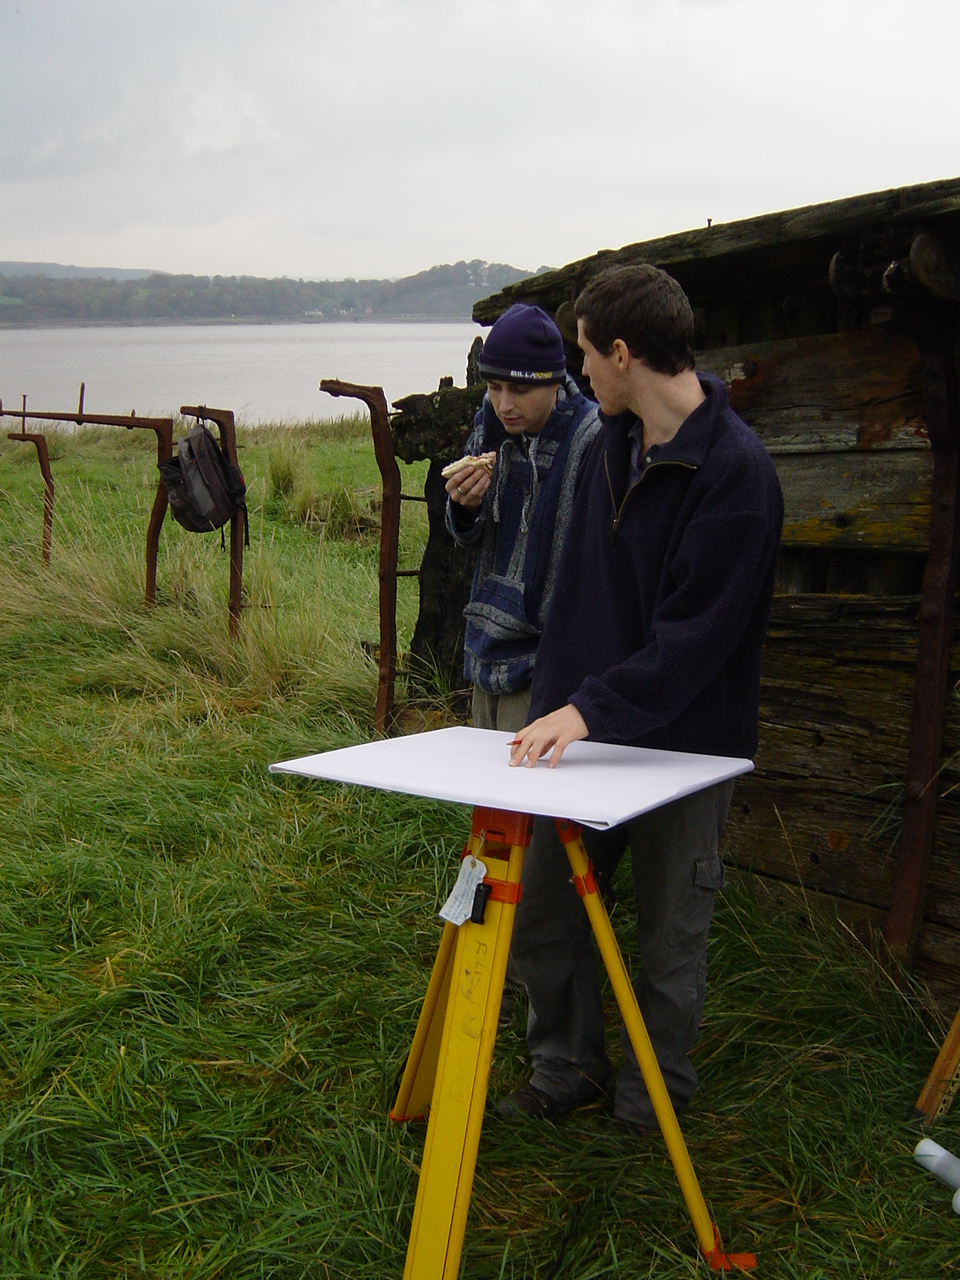 The maritime archaeological students start the survey